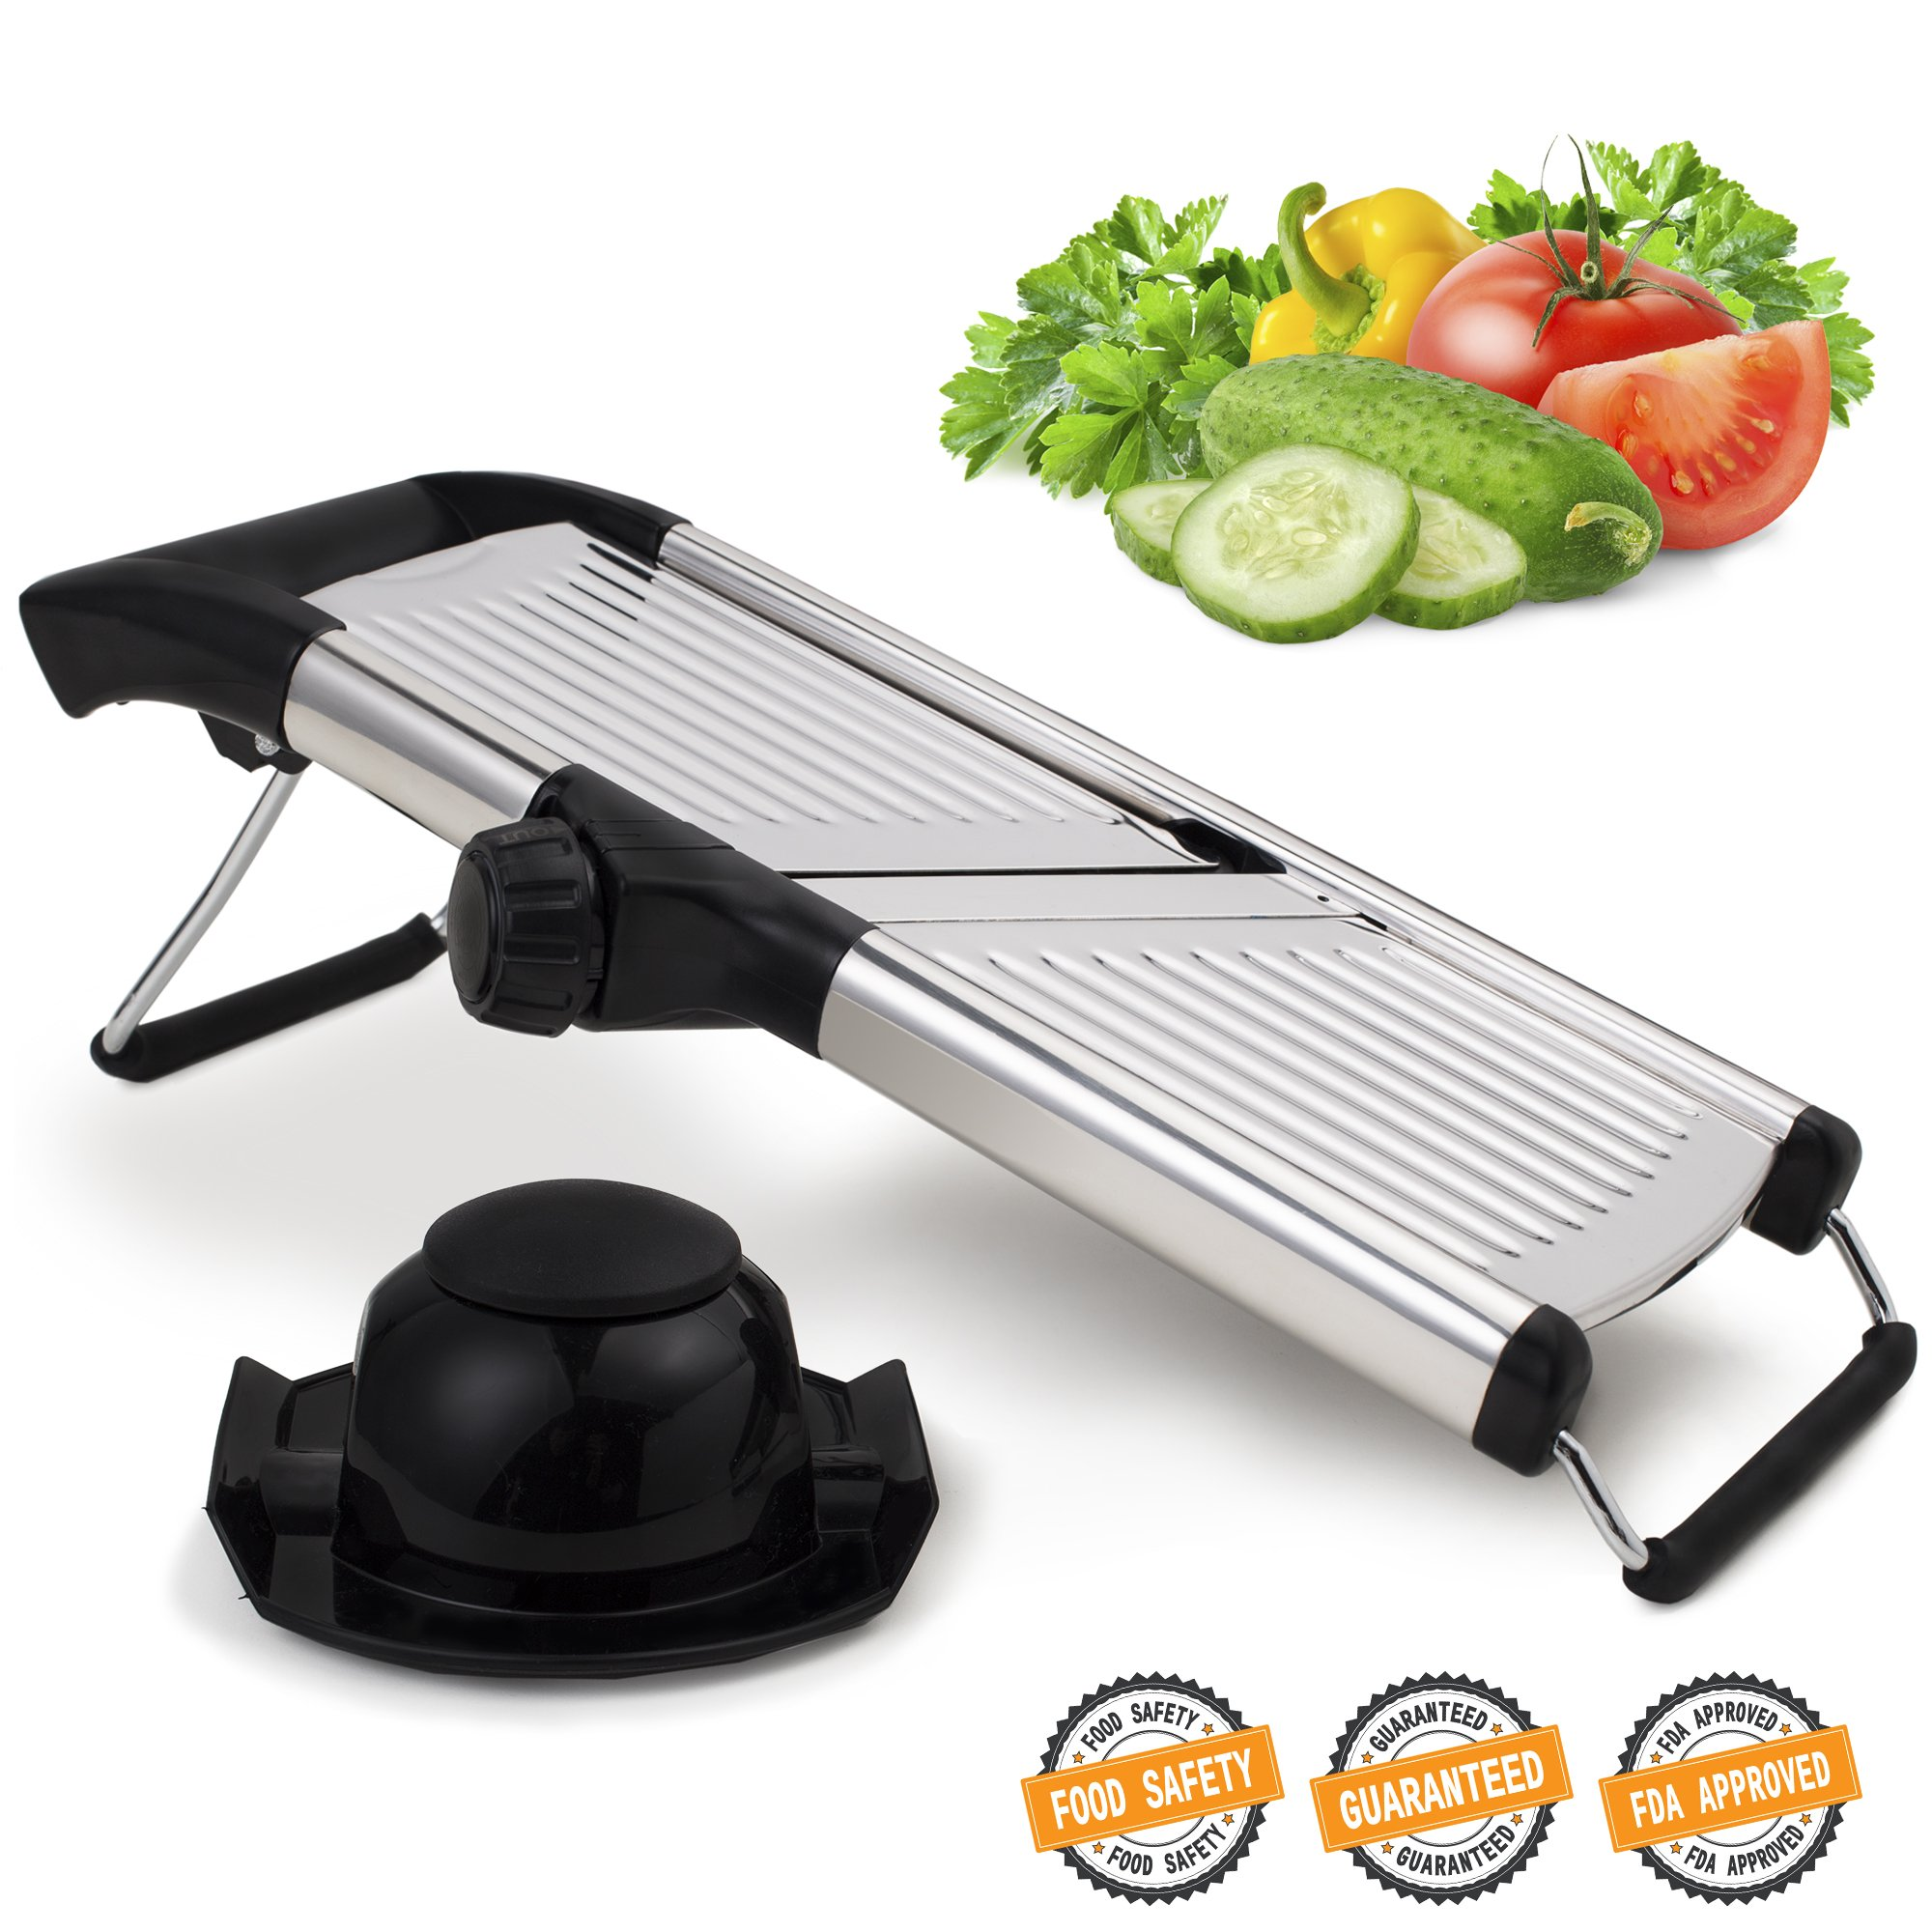 Mandoline Slicer for Home and Professional Use - Vegetable Slicer with Razor Sharp Blades that Do Not Require Maintenance by ELYX